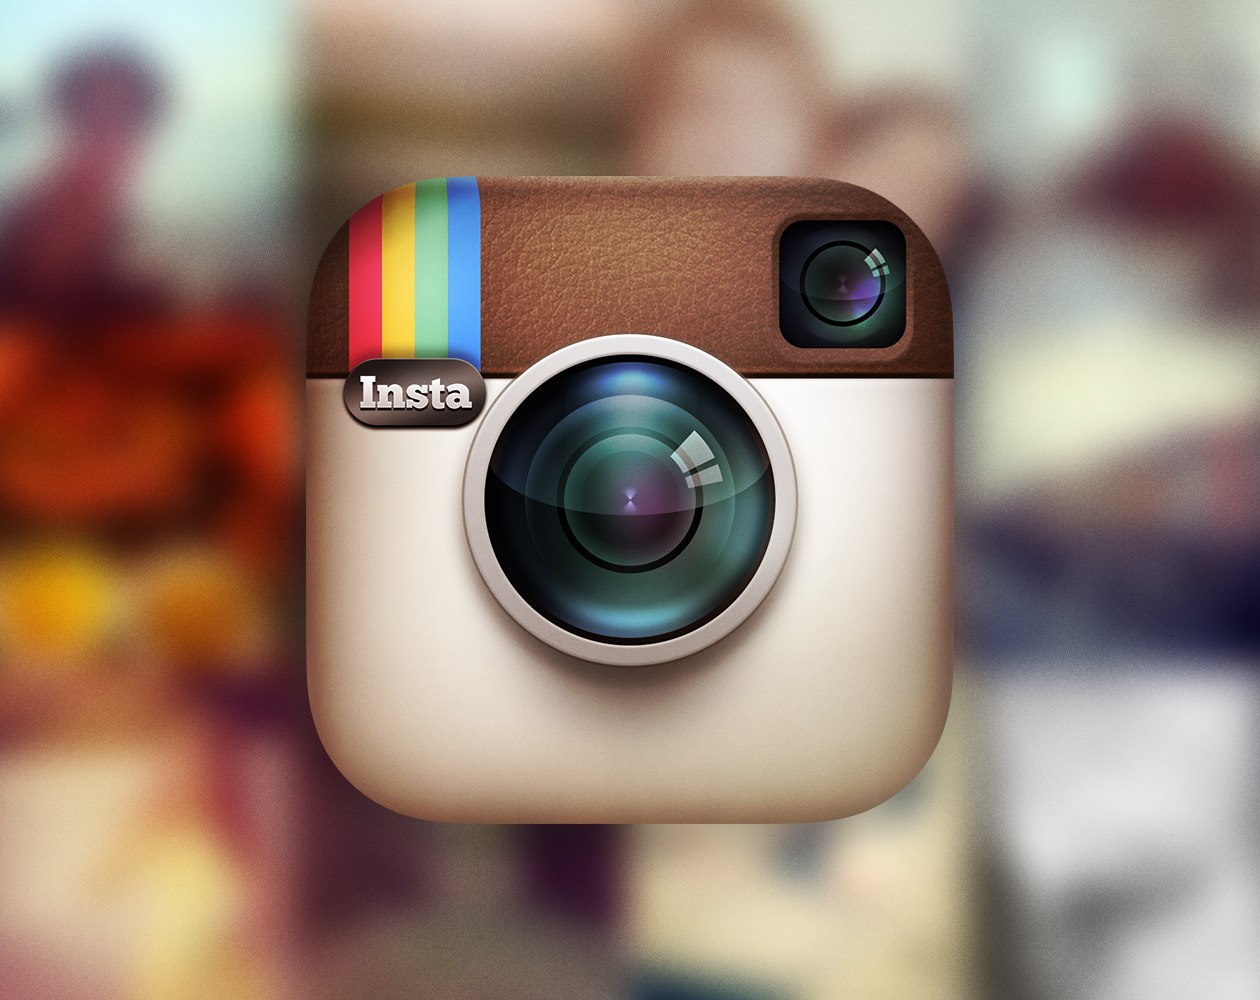 Instagram Recovery - How to See/Recover Deleted - EaseUS